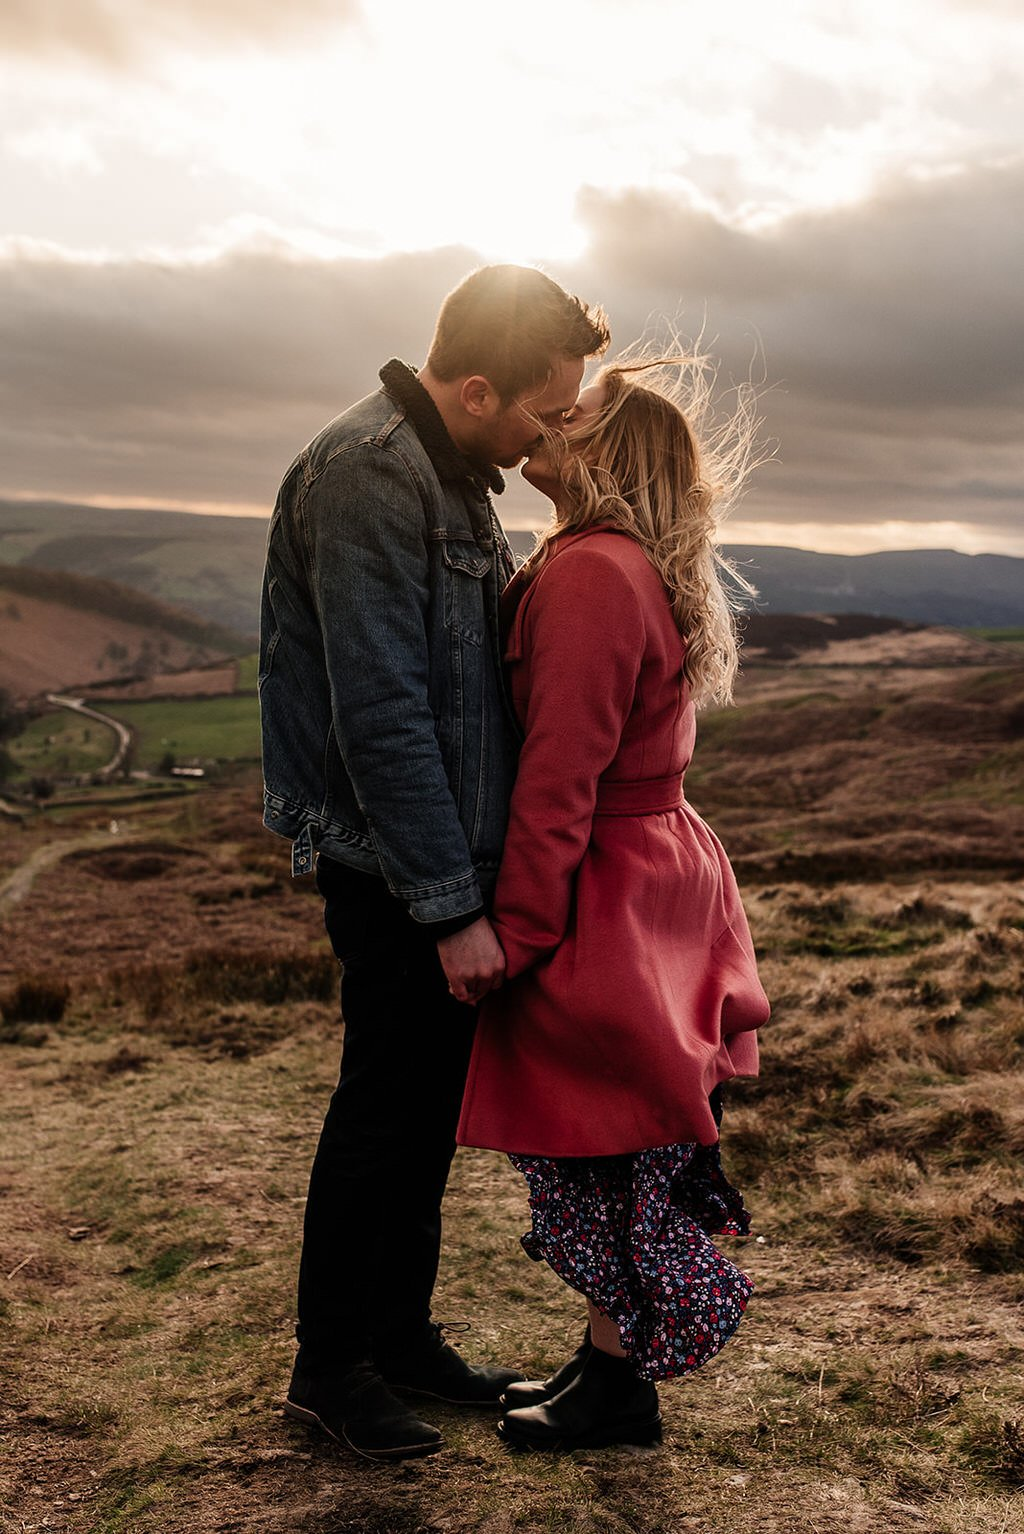 Peak district engagement shoot with Isobel and Tom